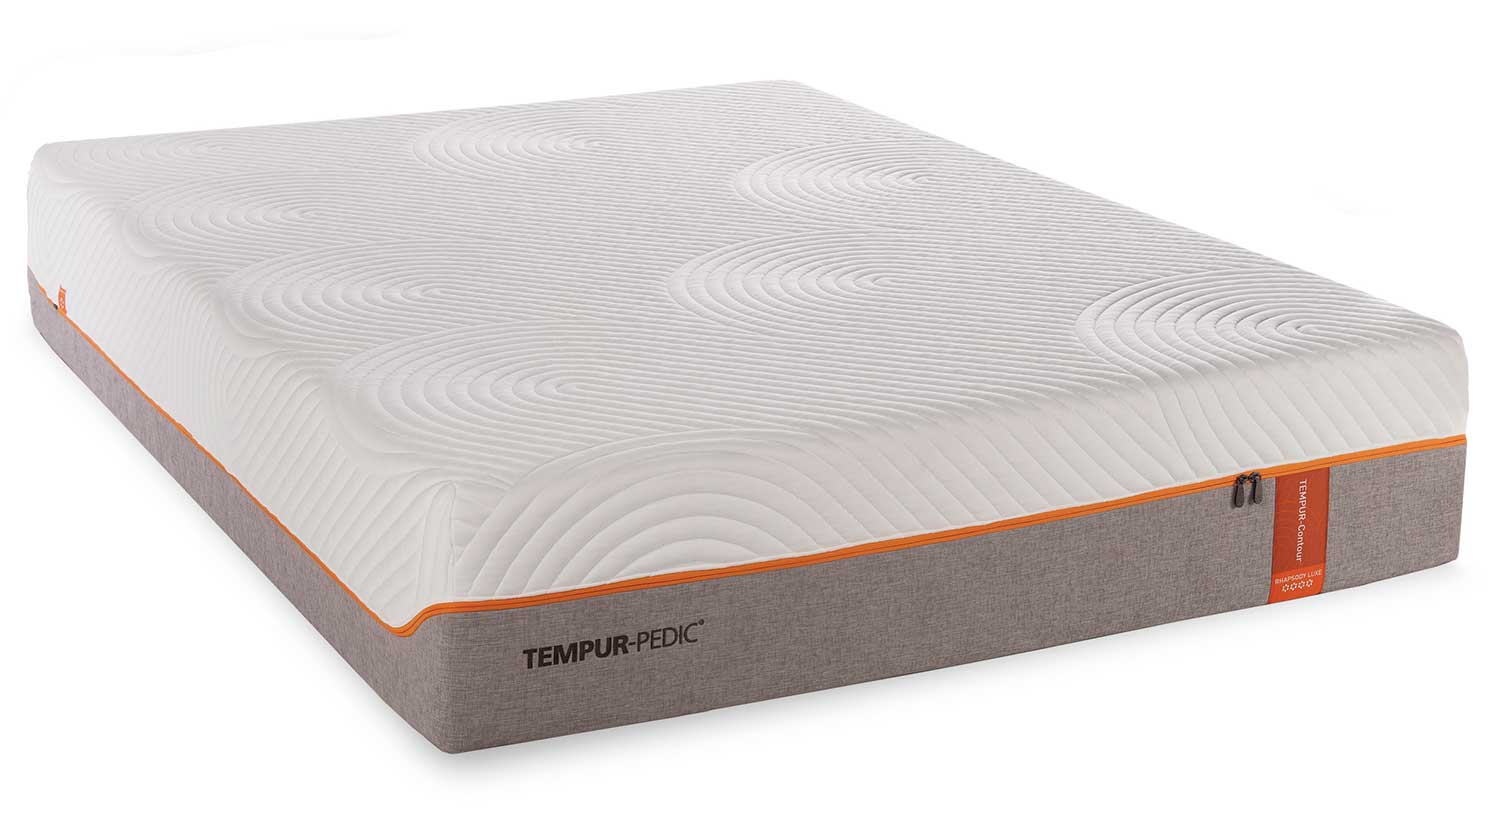 Top 7 Tempurpedic Mattress Models Best Reviews 2019